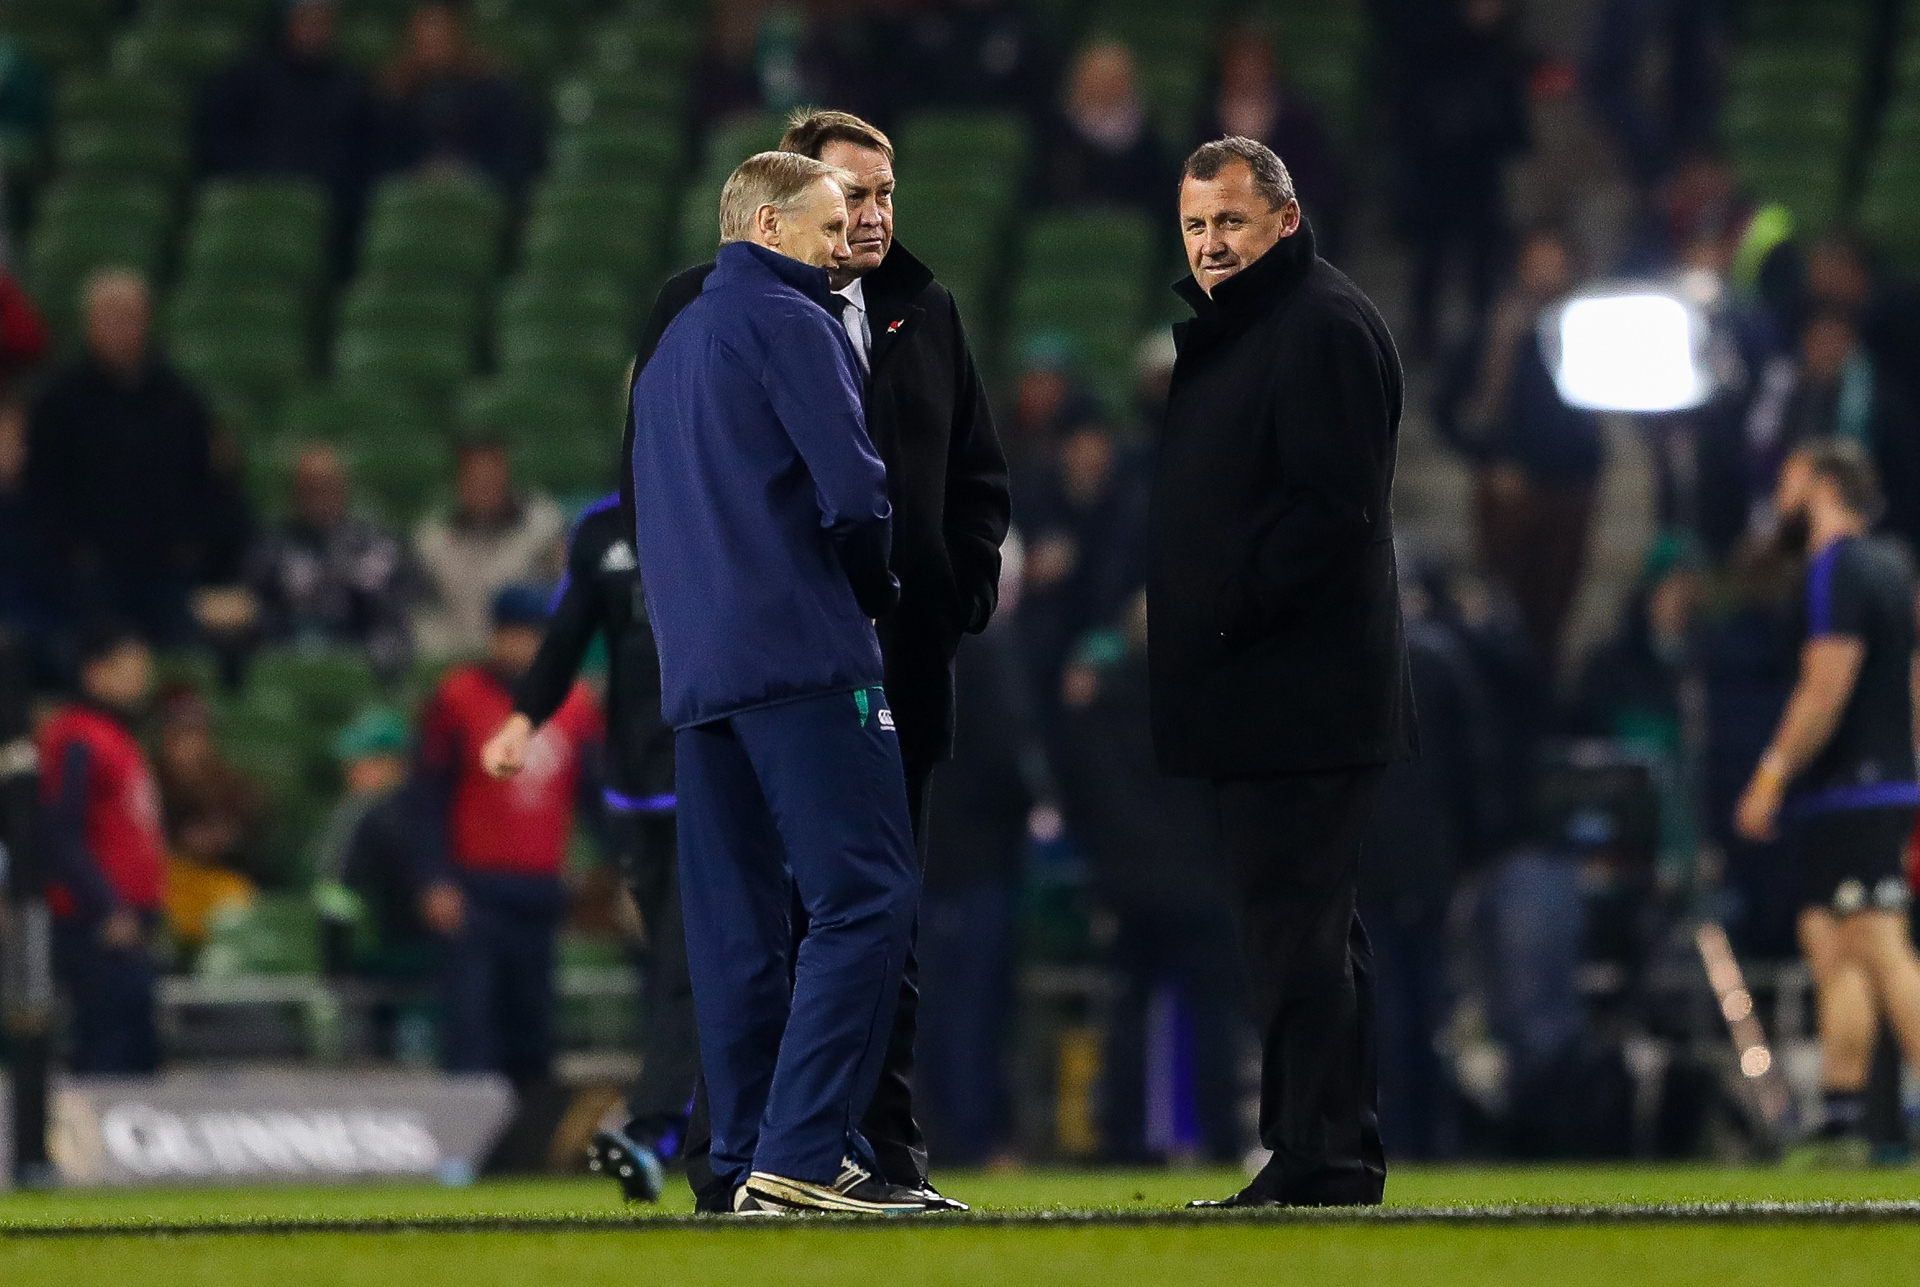 Rugby: All Blacks approached Ireland coach Joe Schmidt over role last year